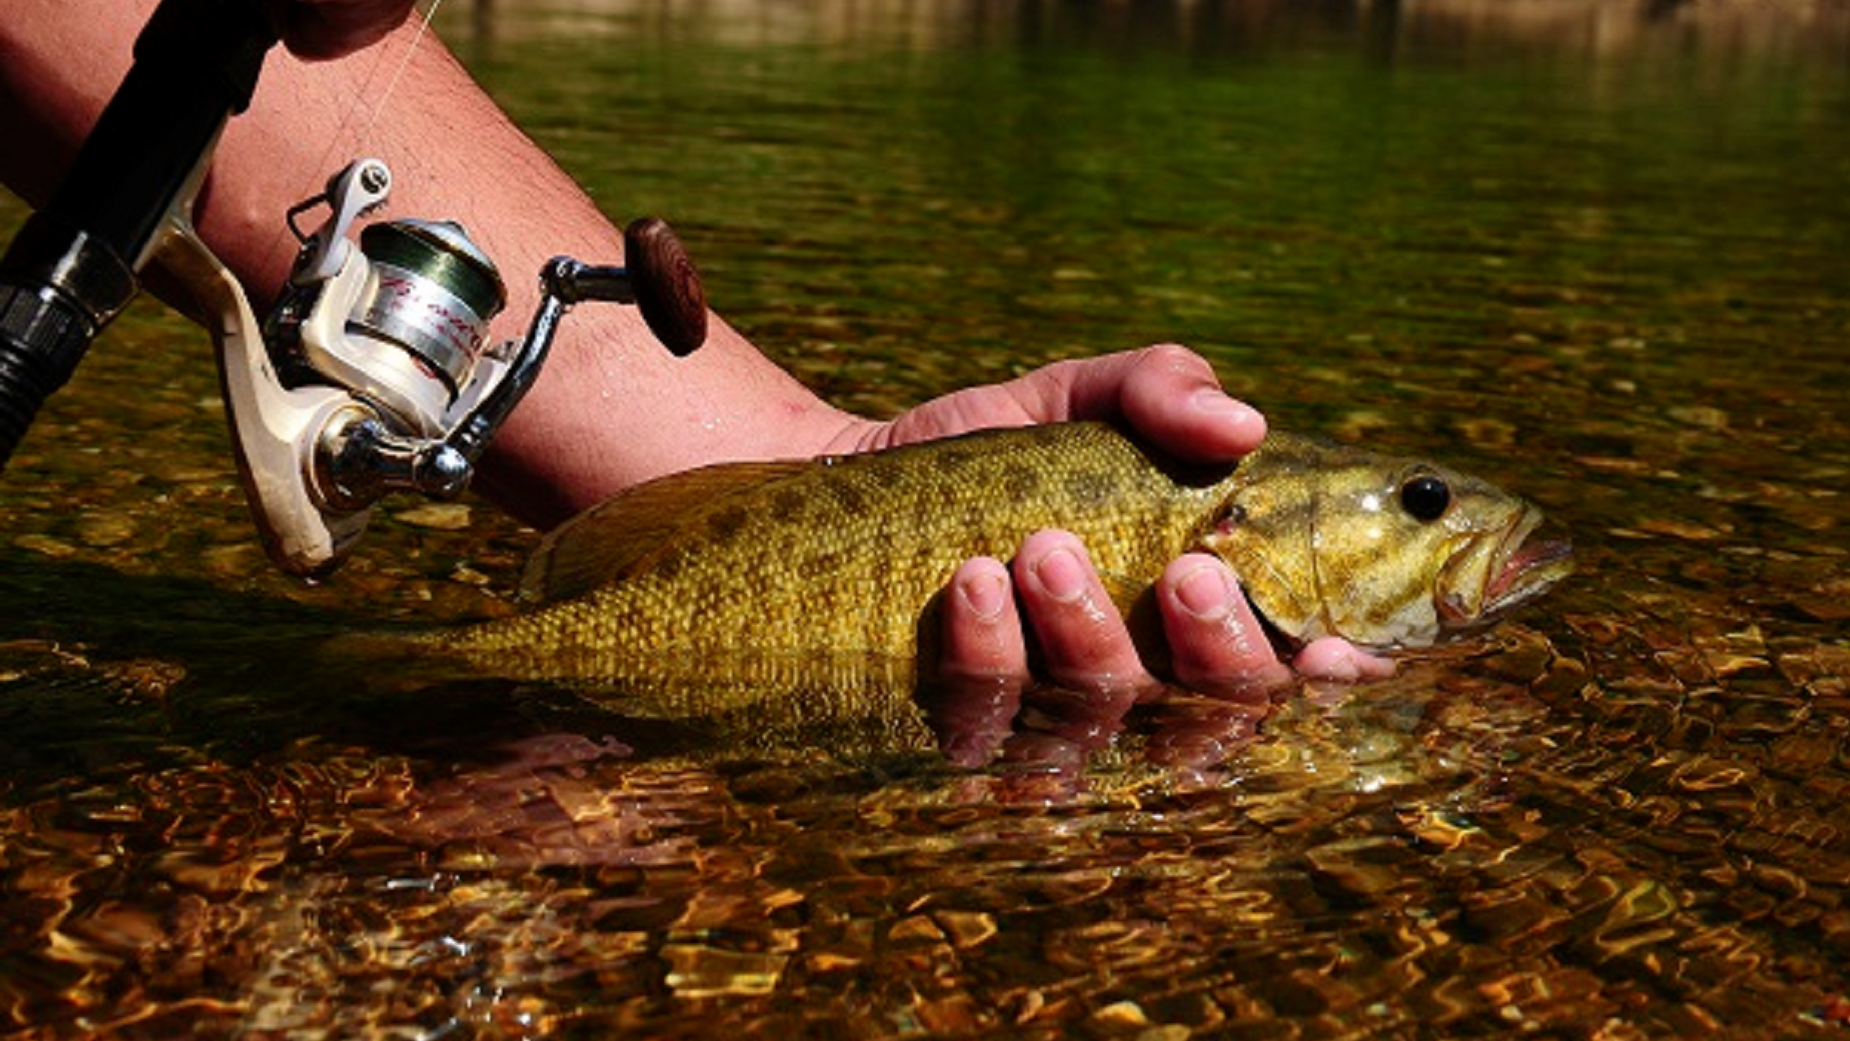 A fisherman releasing a smallmouth bass